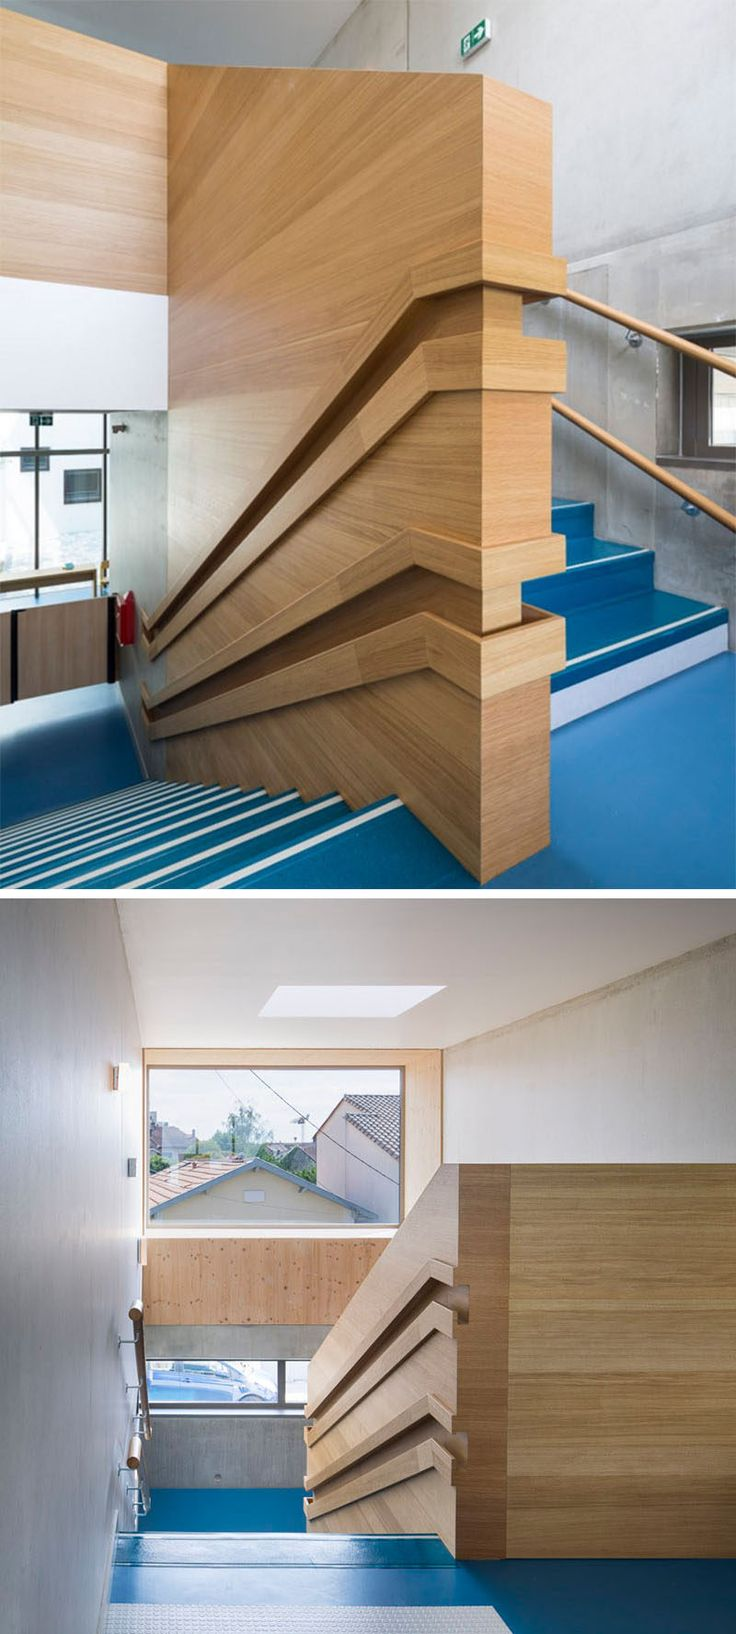 Stair Design Idea - 9 Examples Of Built-In Handrails // These dual handrails in a day care have been built into the wood wall, making sure both the children and the adults have a space to hold on to.